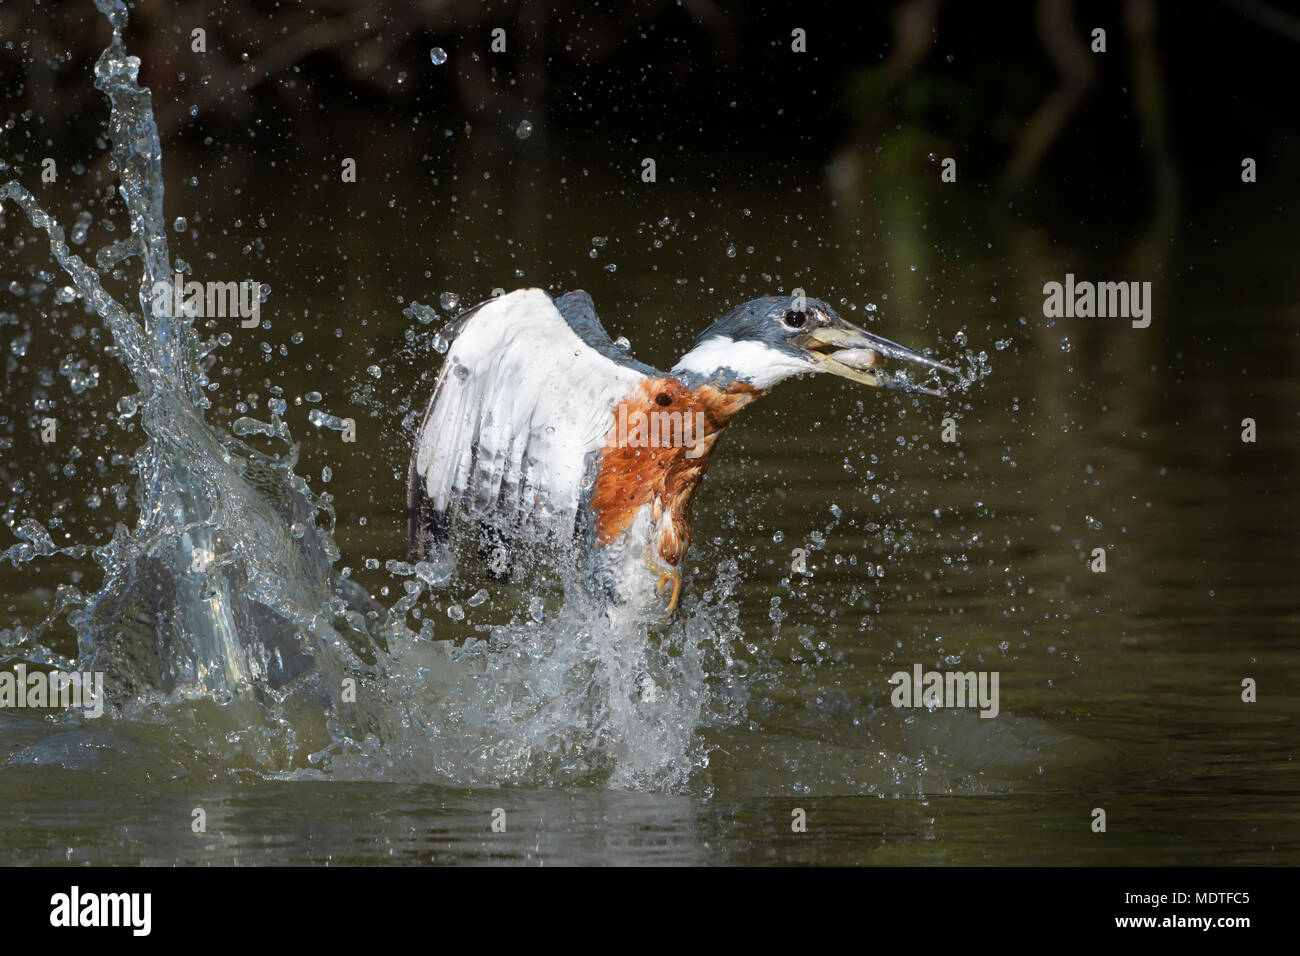 Action shot of ringed kingfisher (Megaceryle torquata), diving up with captured fish, Brazil, Pantanal - Stock Image